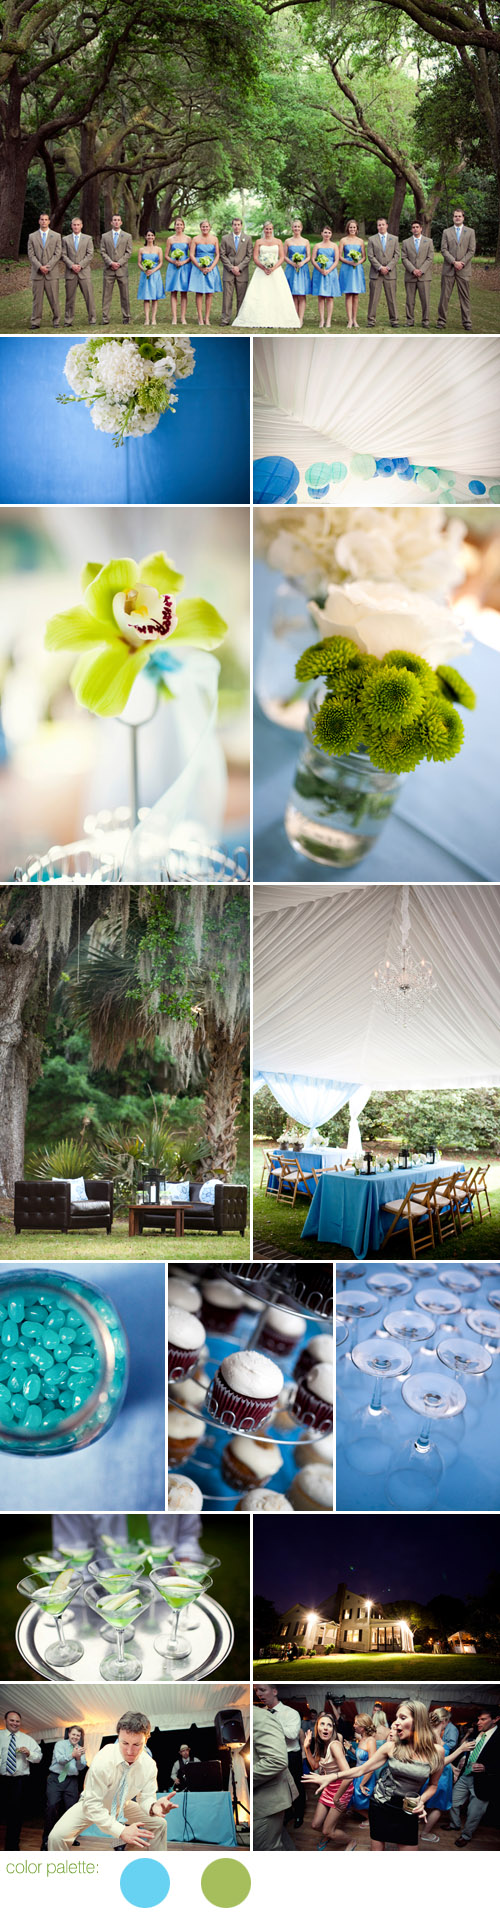 Charleston, South Carolina wedding at The Legare Waring House, sky blue and green wedding color palette, photos by The Schultzes